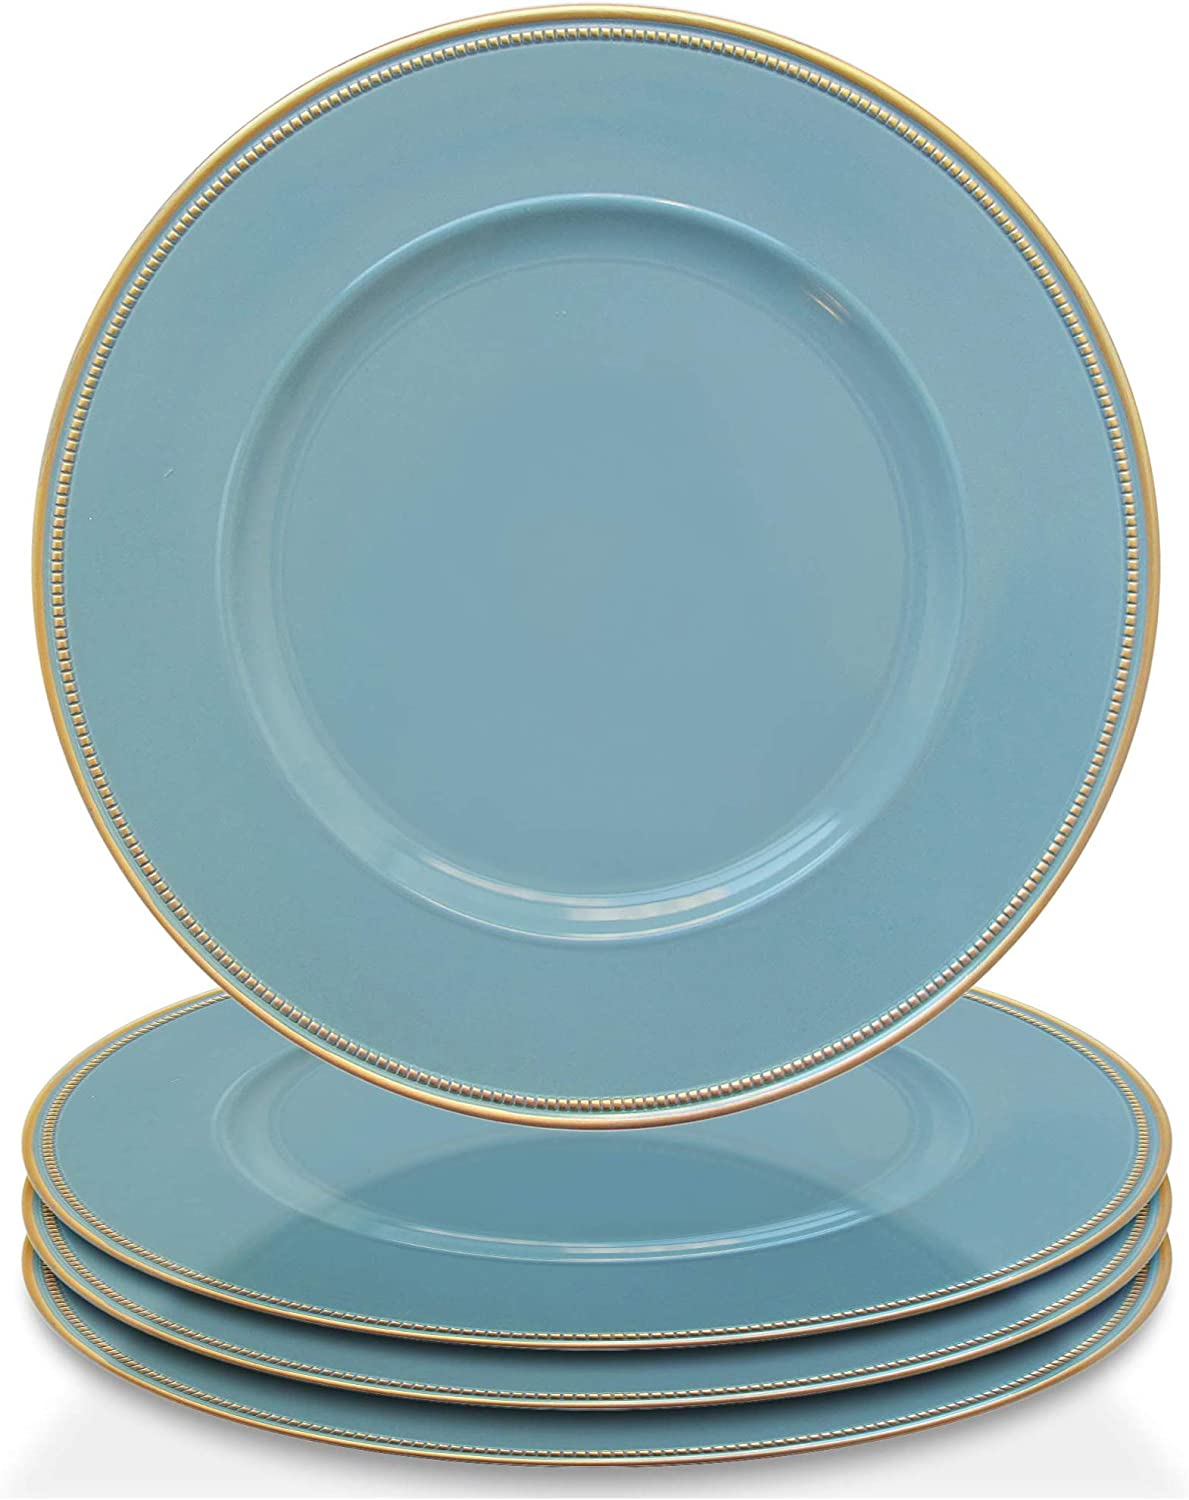 """Elle Decor Accent Rim Set of 4 Charger Large 13"""" Decorative Melamine Service Plate for Home & Professional Fine Dining-For Catering Events, Dinner Parties, Weddings, Blue"""